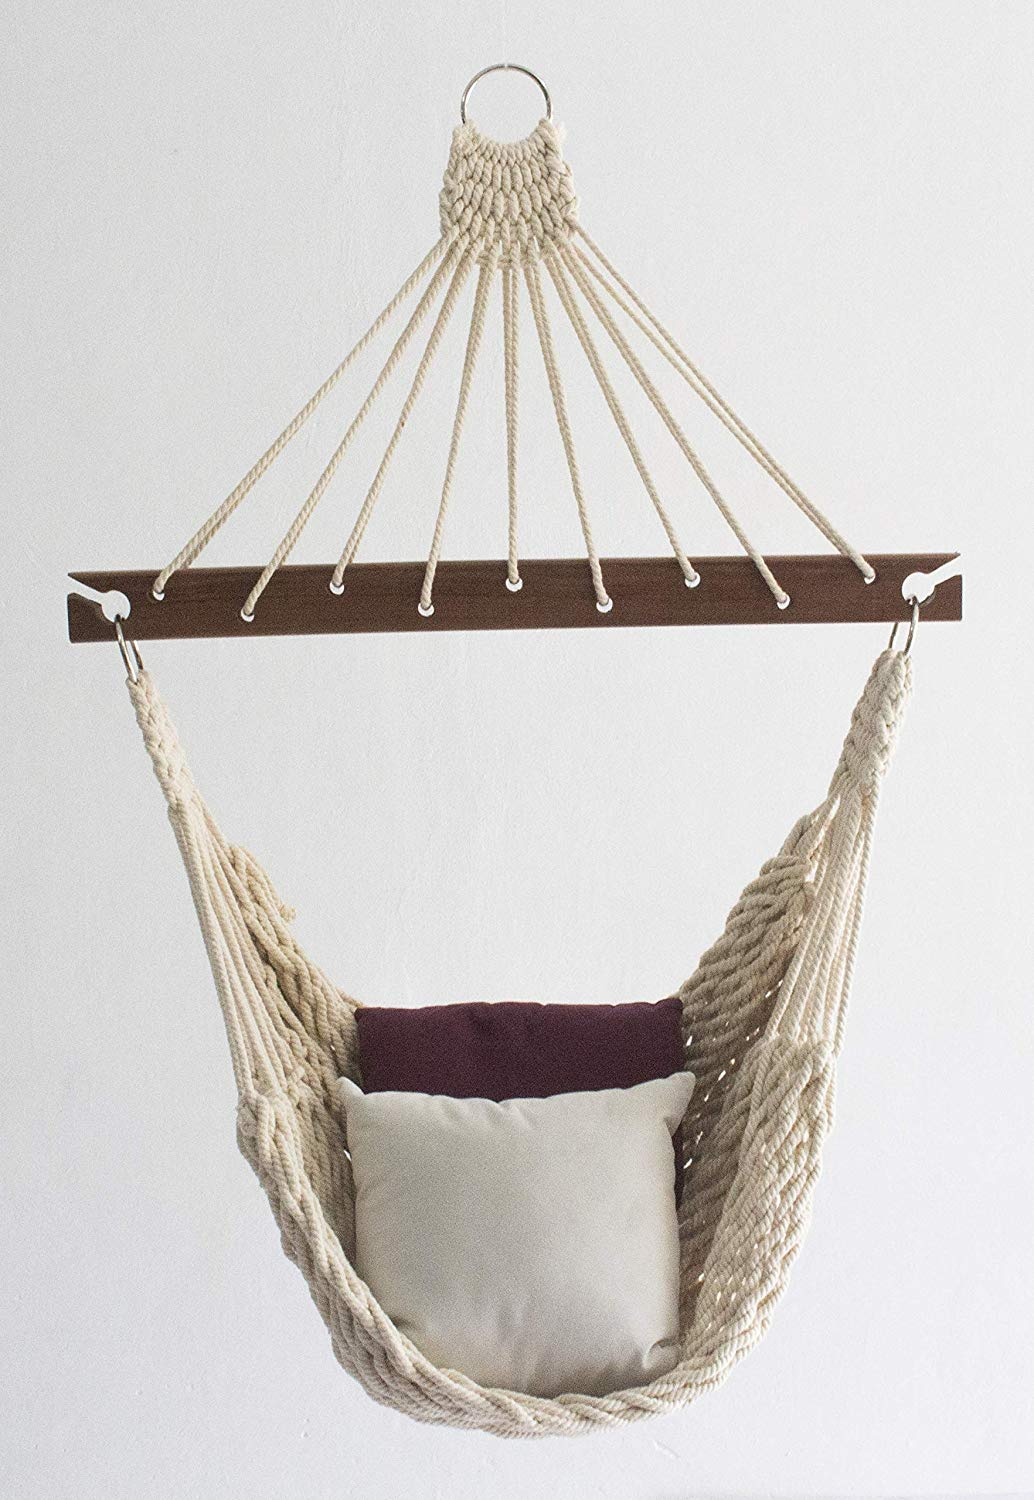 hacienda-mayan-hammock-chair-cotton-rope-and-wood-refined-luxury